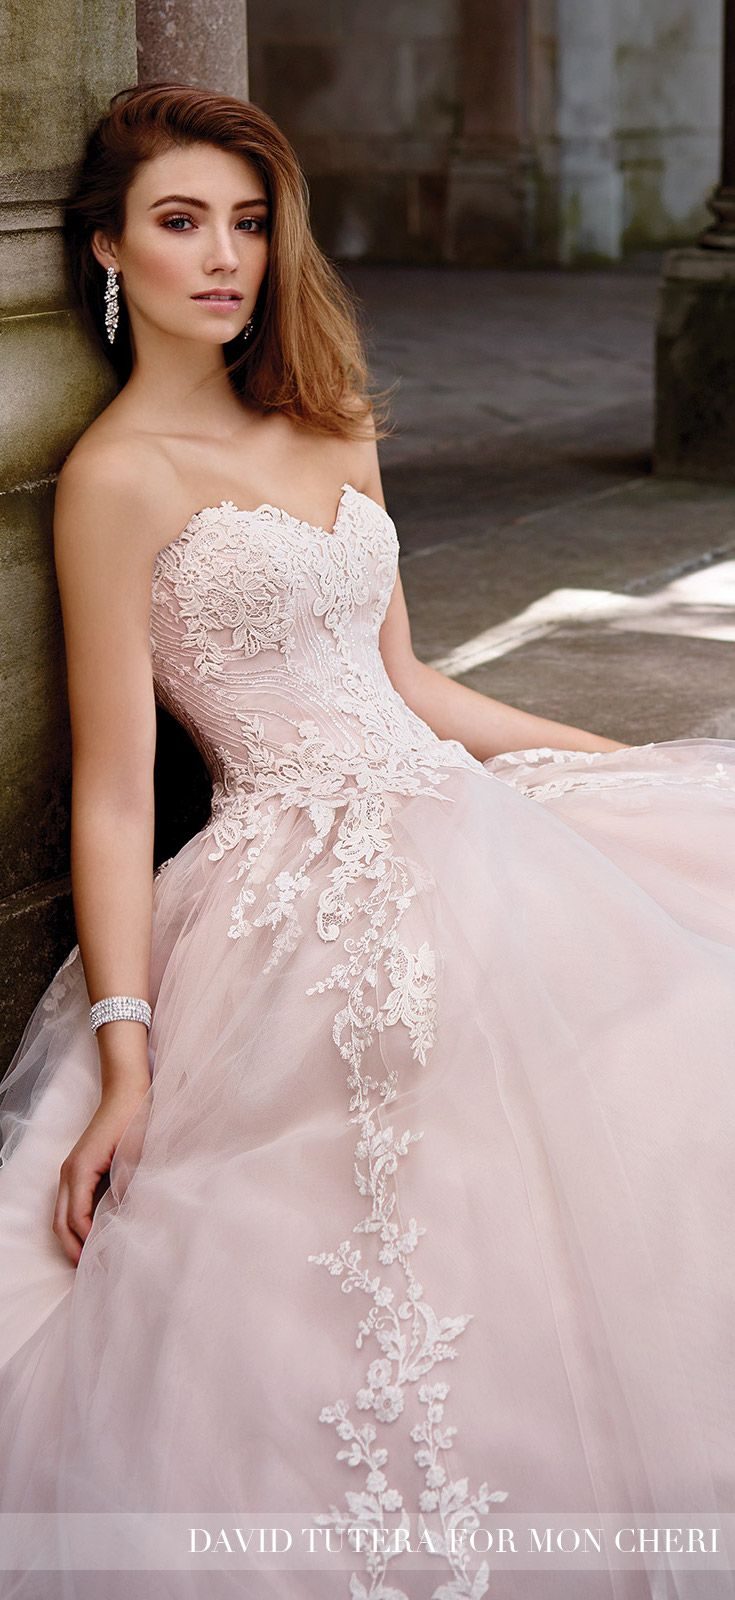 Lace A Line Sweetheart Neckline Wedding Dress 117267